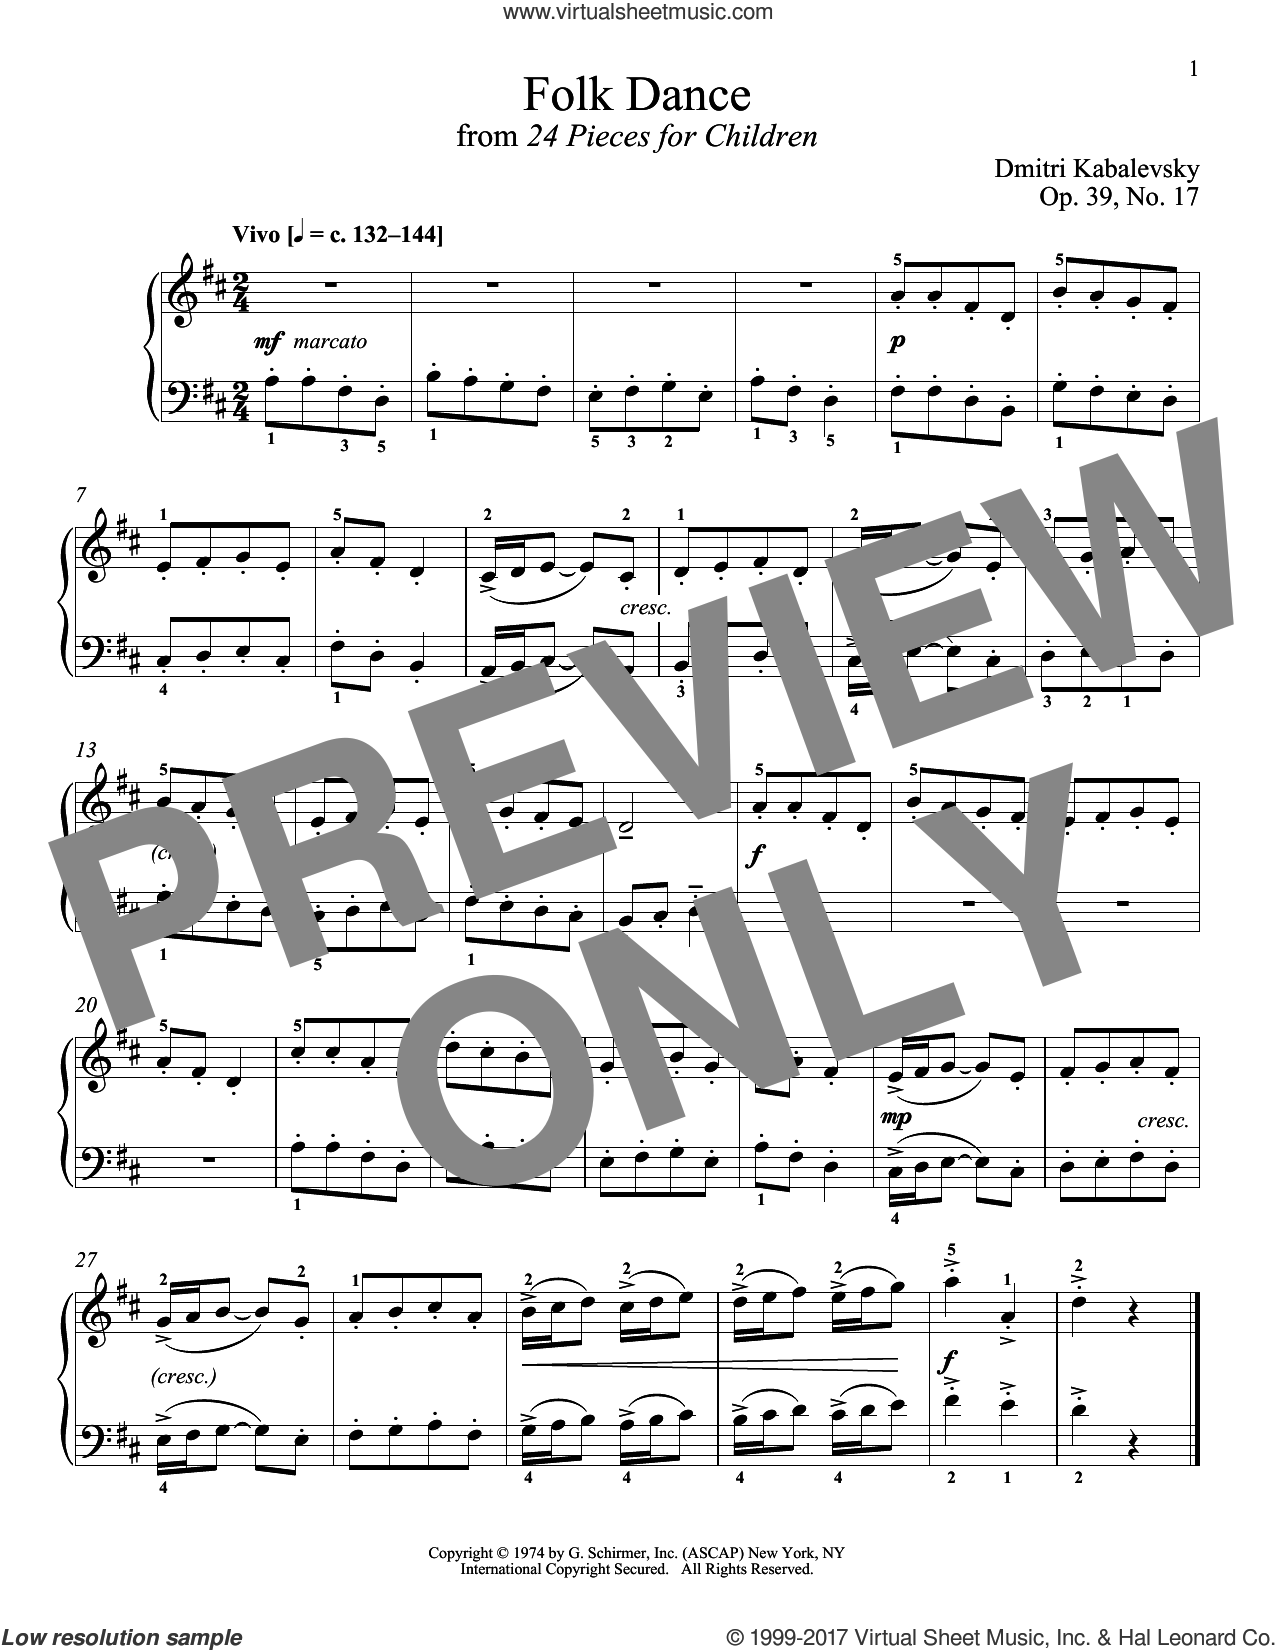 Folk Dance, Op. 39, No. 17 sheet music for piano solo by Dmitri Kabalevsky and Richard Walters, classical score, intermediate skill level